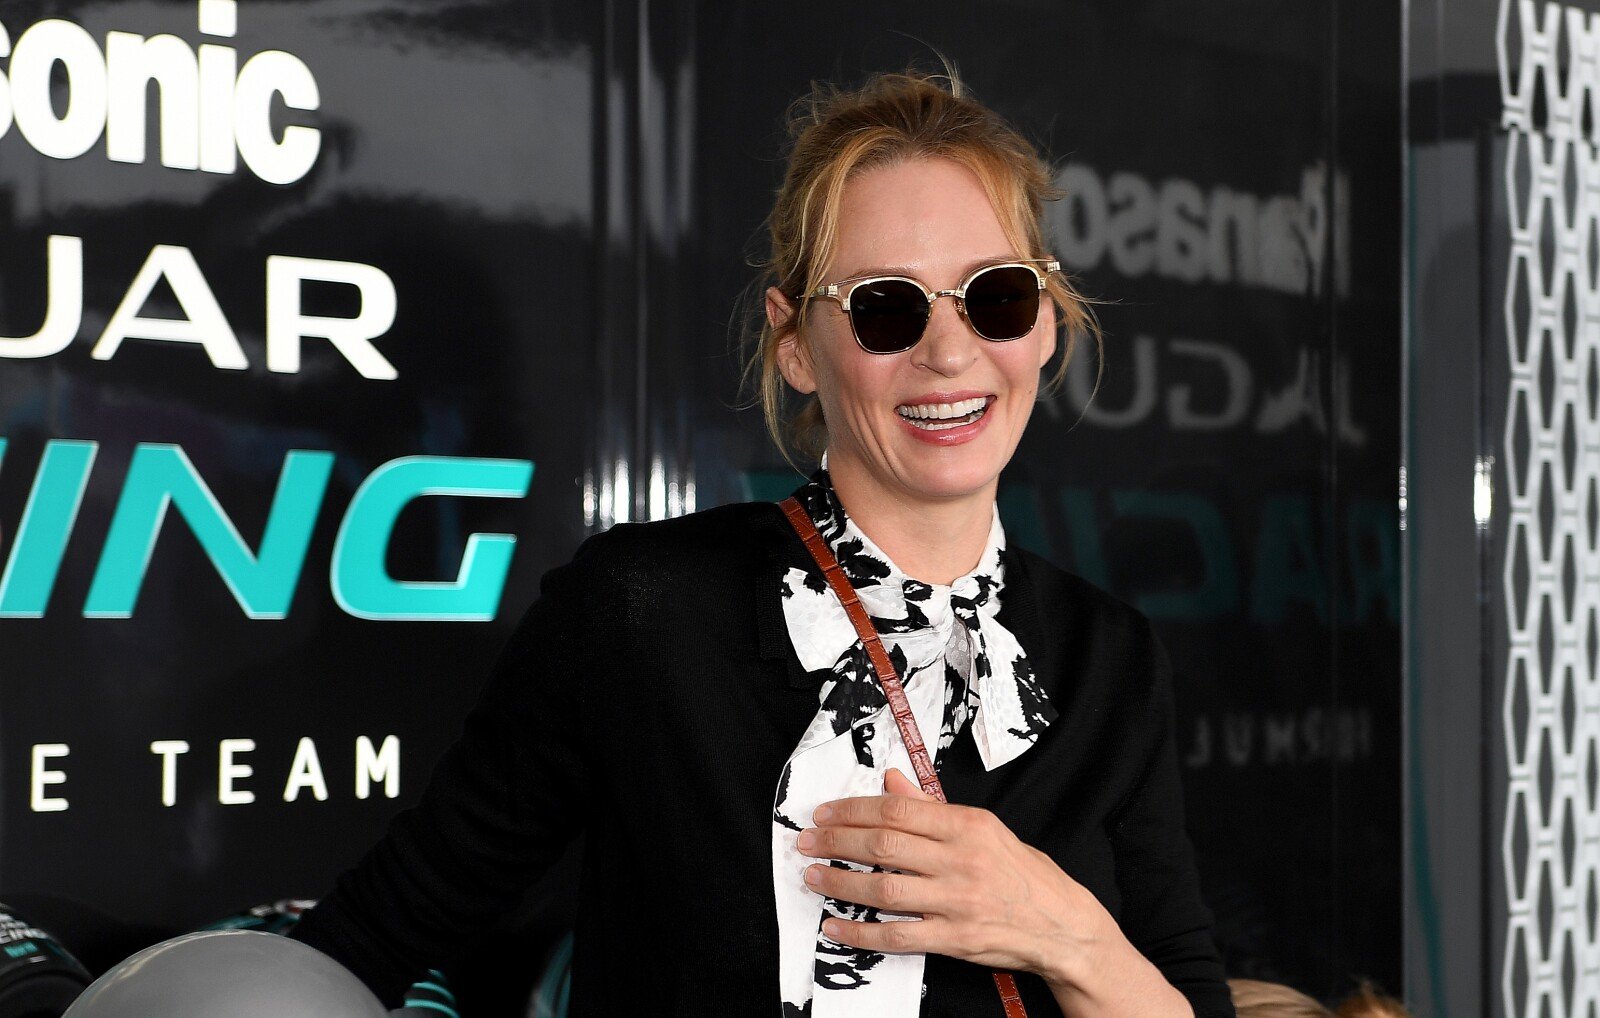 Uma Thurman New York City E Prix 2018.jpg